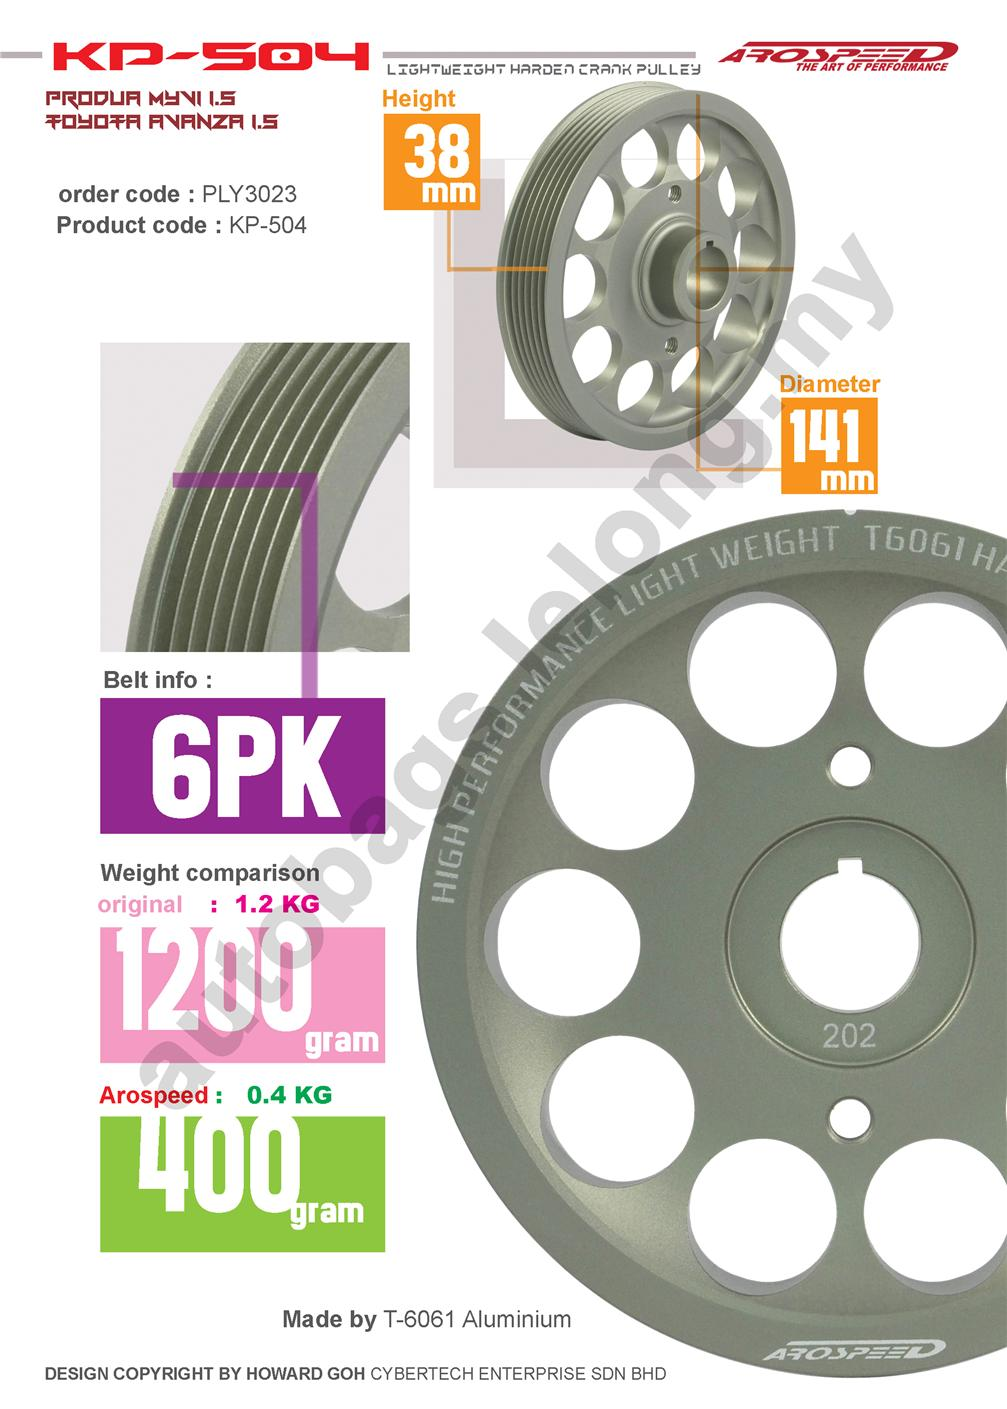 AROSPEED Produa Myvi/Avanza 1.5 Harden Lightening Crankshaft Pulley